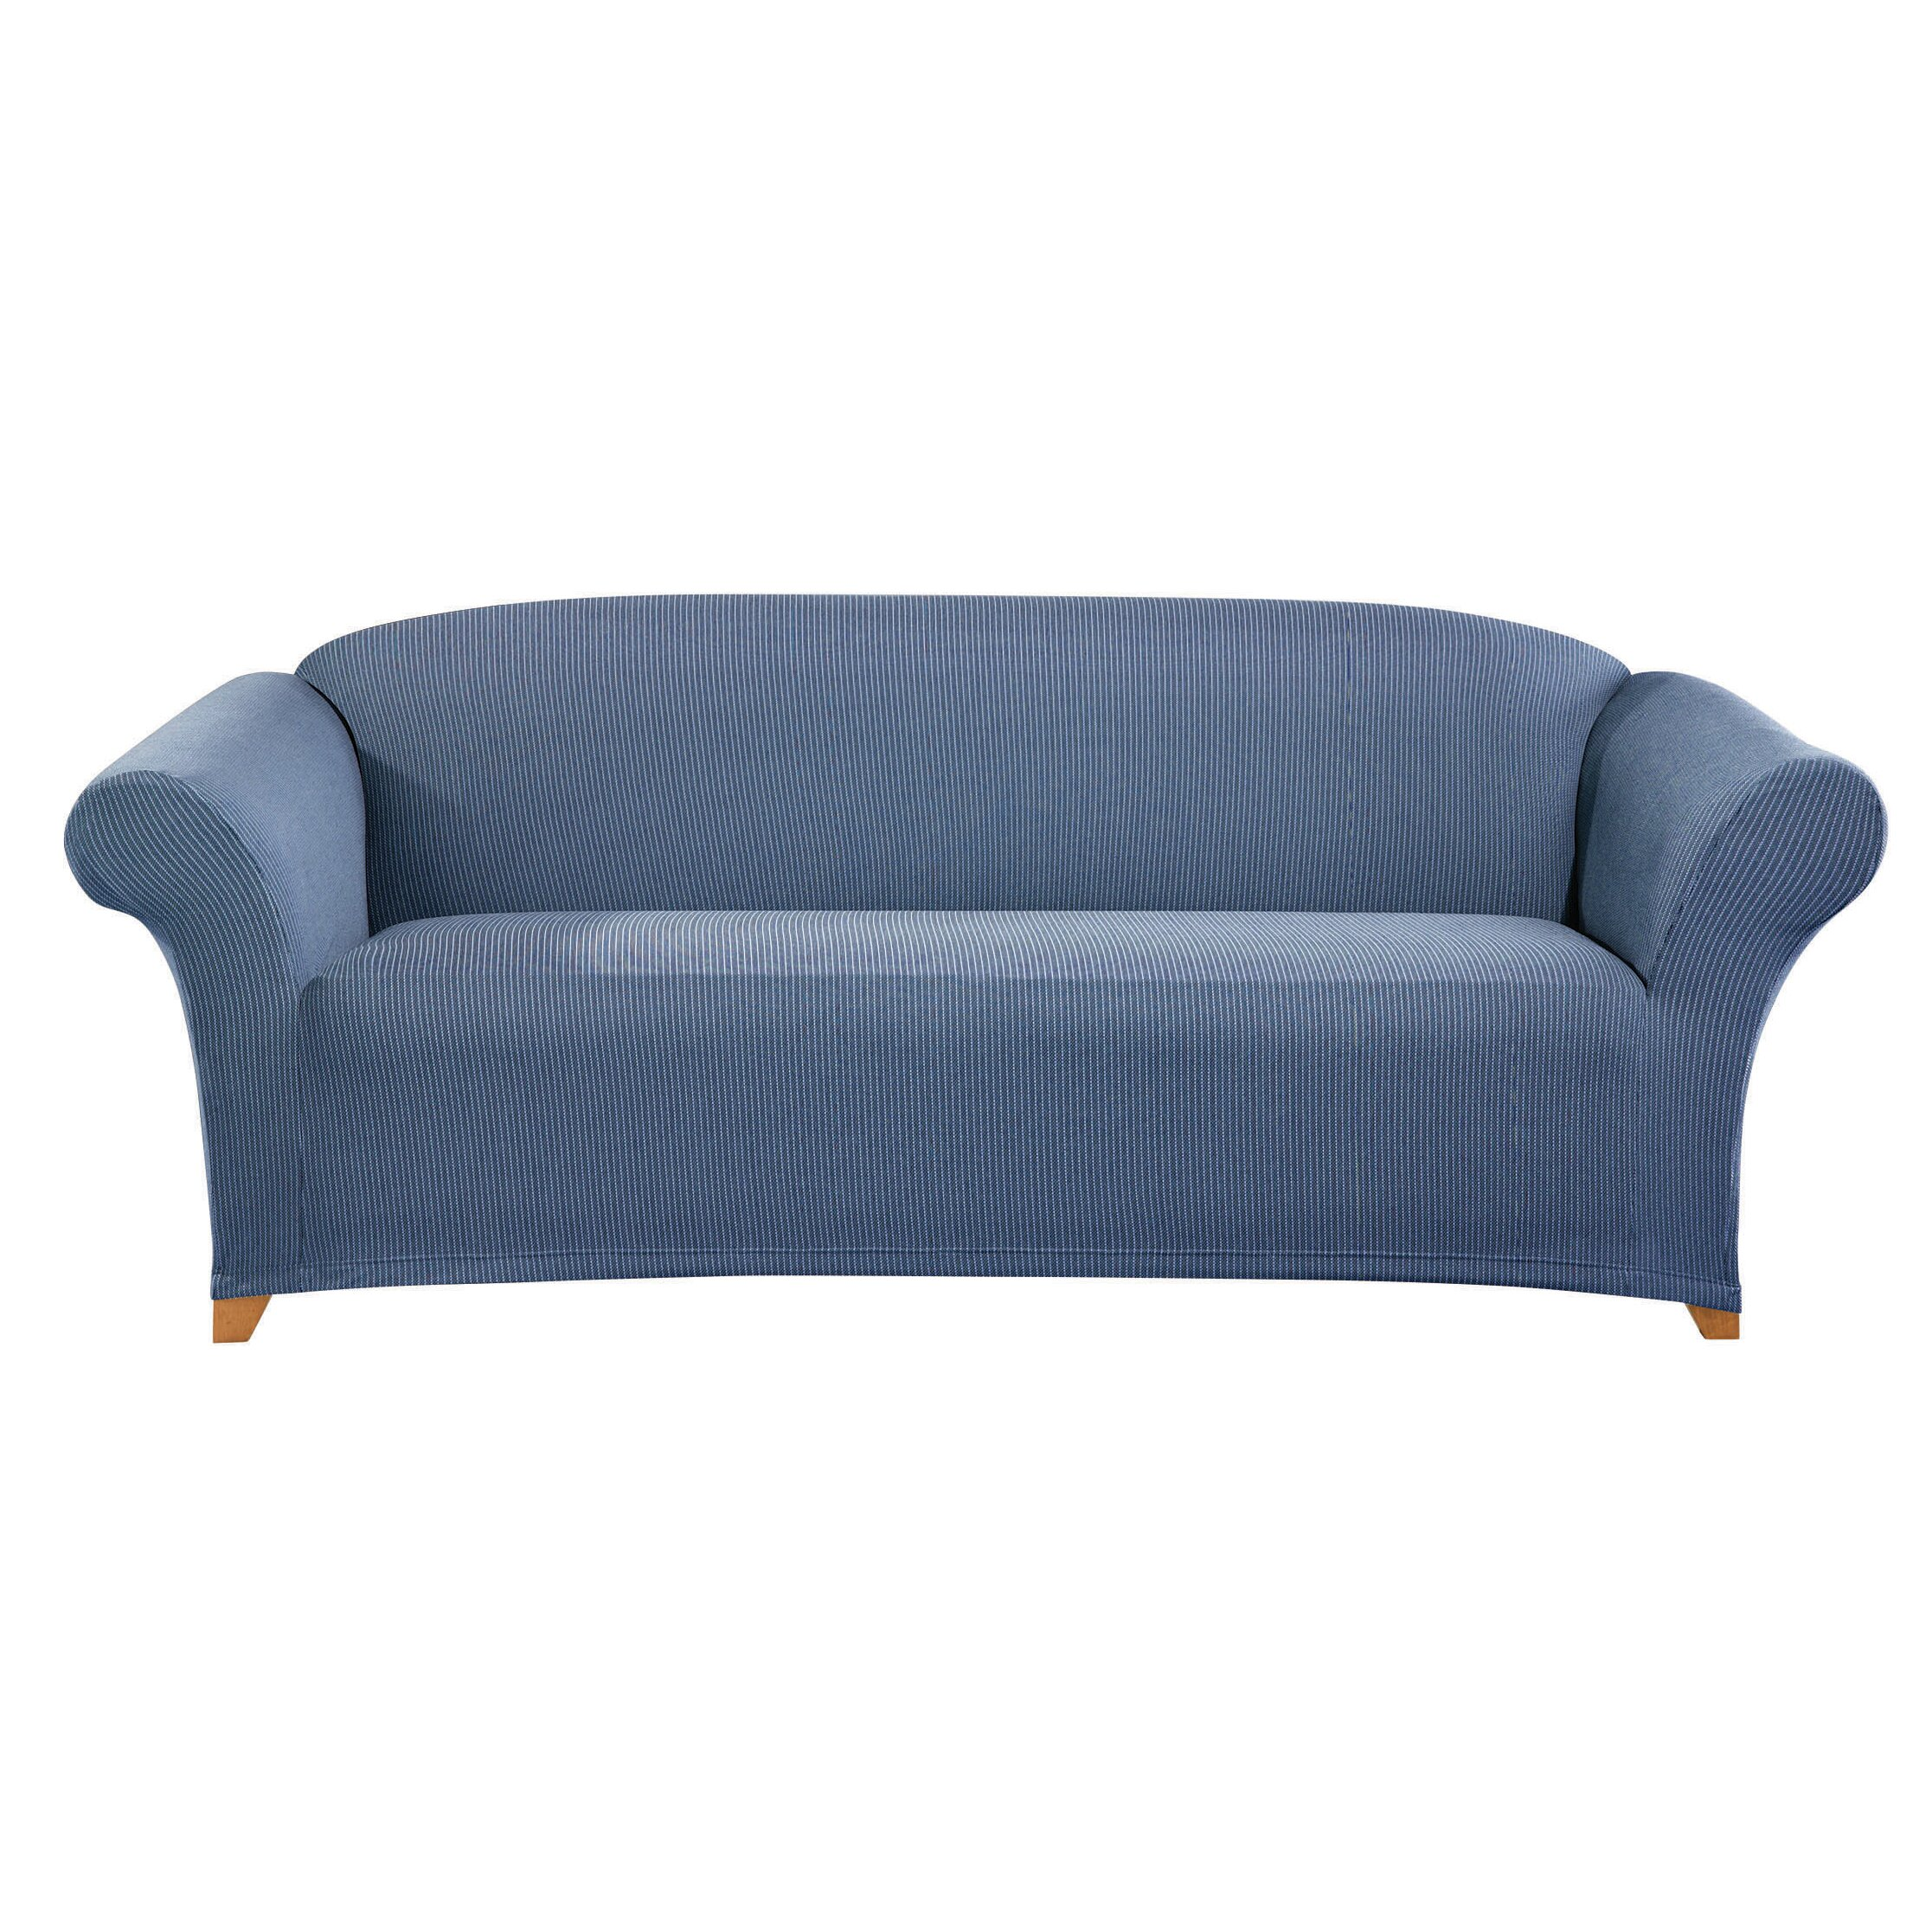 Sofa quilted sofa cover sofa and loveseat sets cheap  : Sure Fit Simple Stretch Ticking Stripe Sofa Slipcover from kingoffice.us size 2233 x 2233 jpeg 882kB